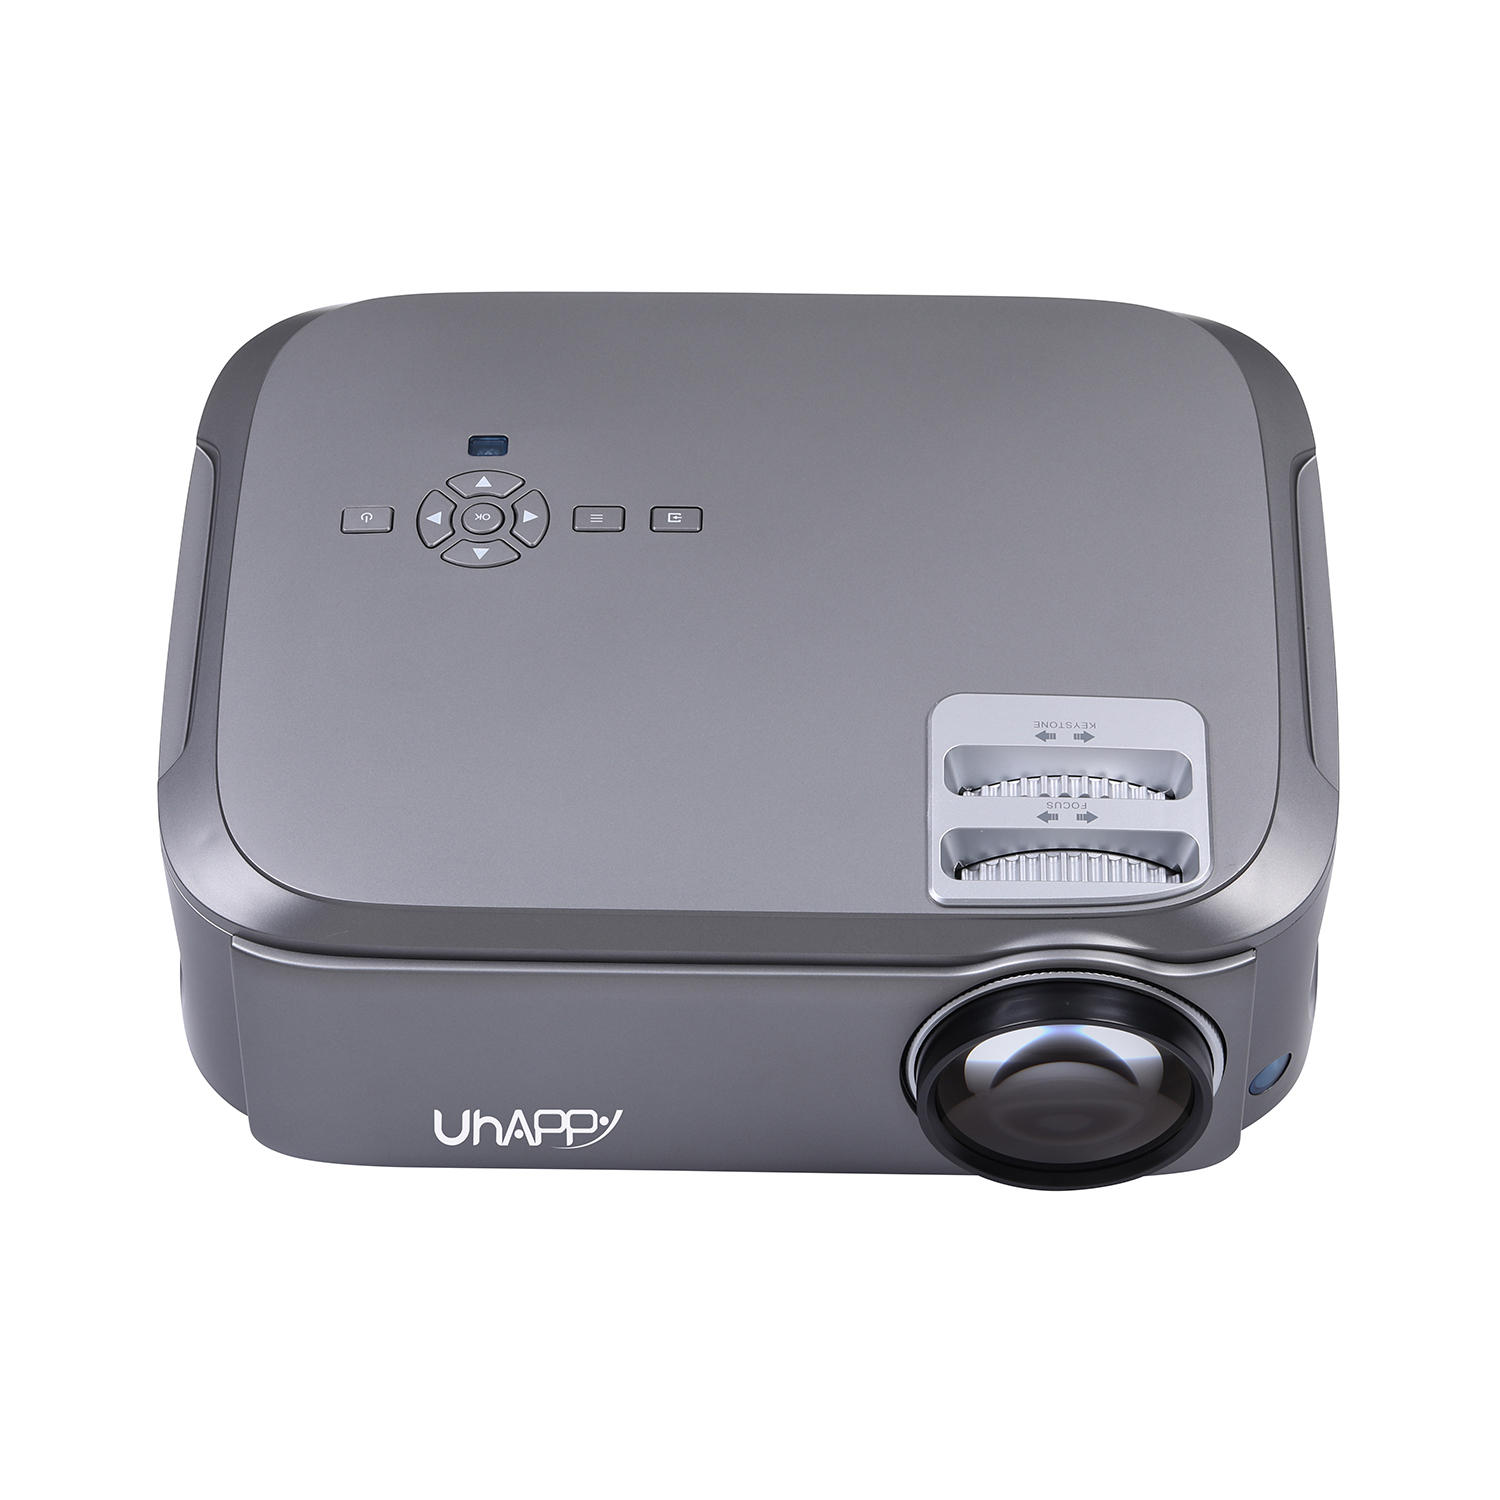 UHAPPY U76 Pro Android 6.0 LED Projector Mini Home Theater (1920x1080p HD, 3500 Lumens)